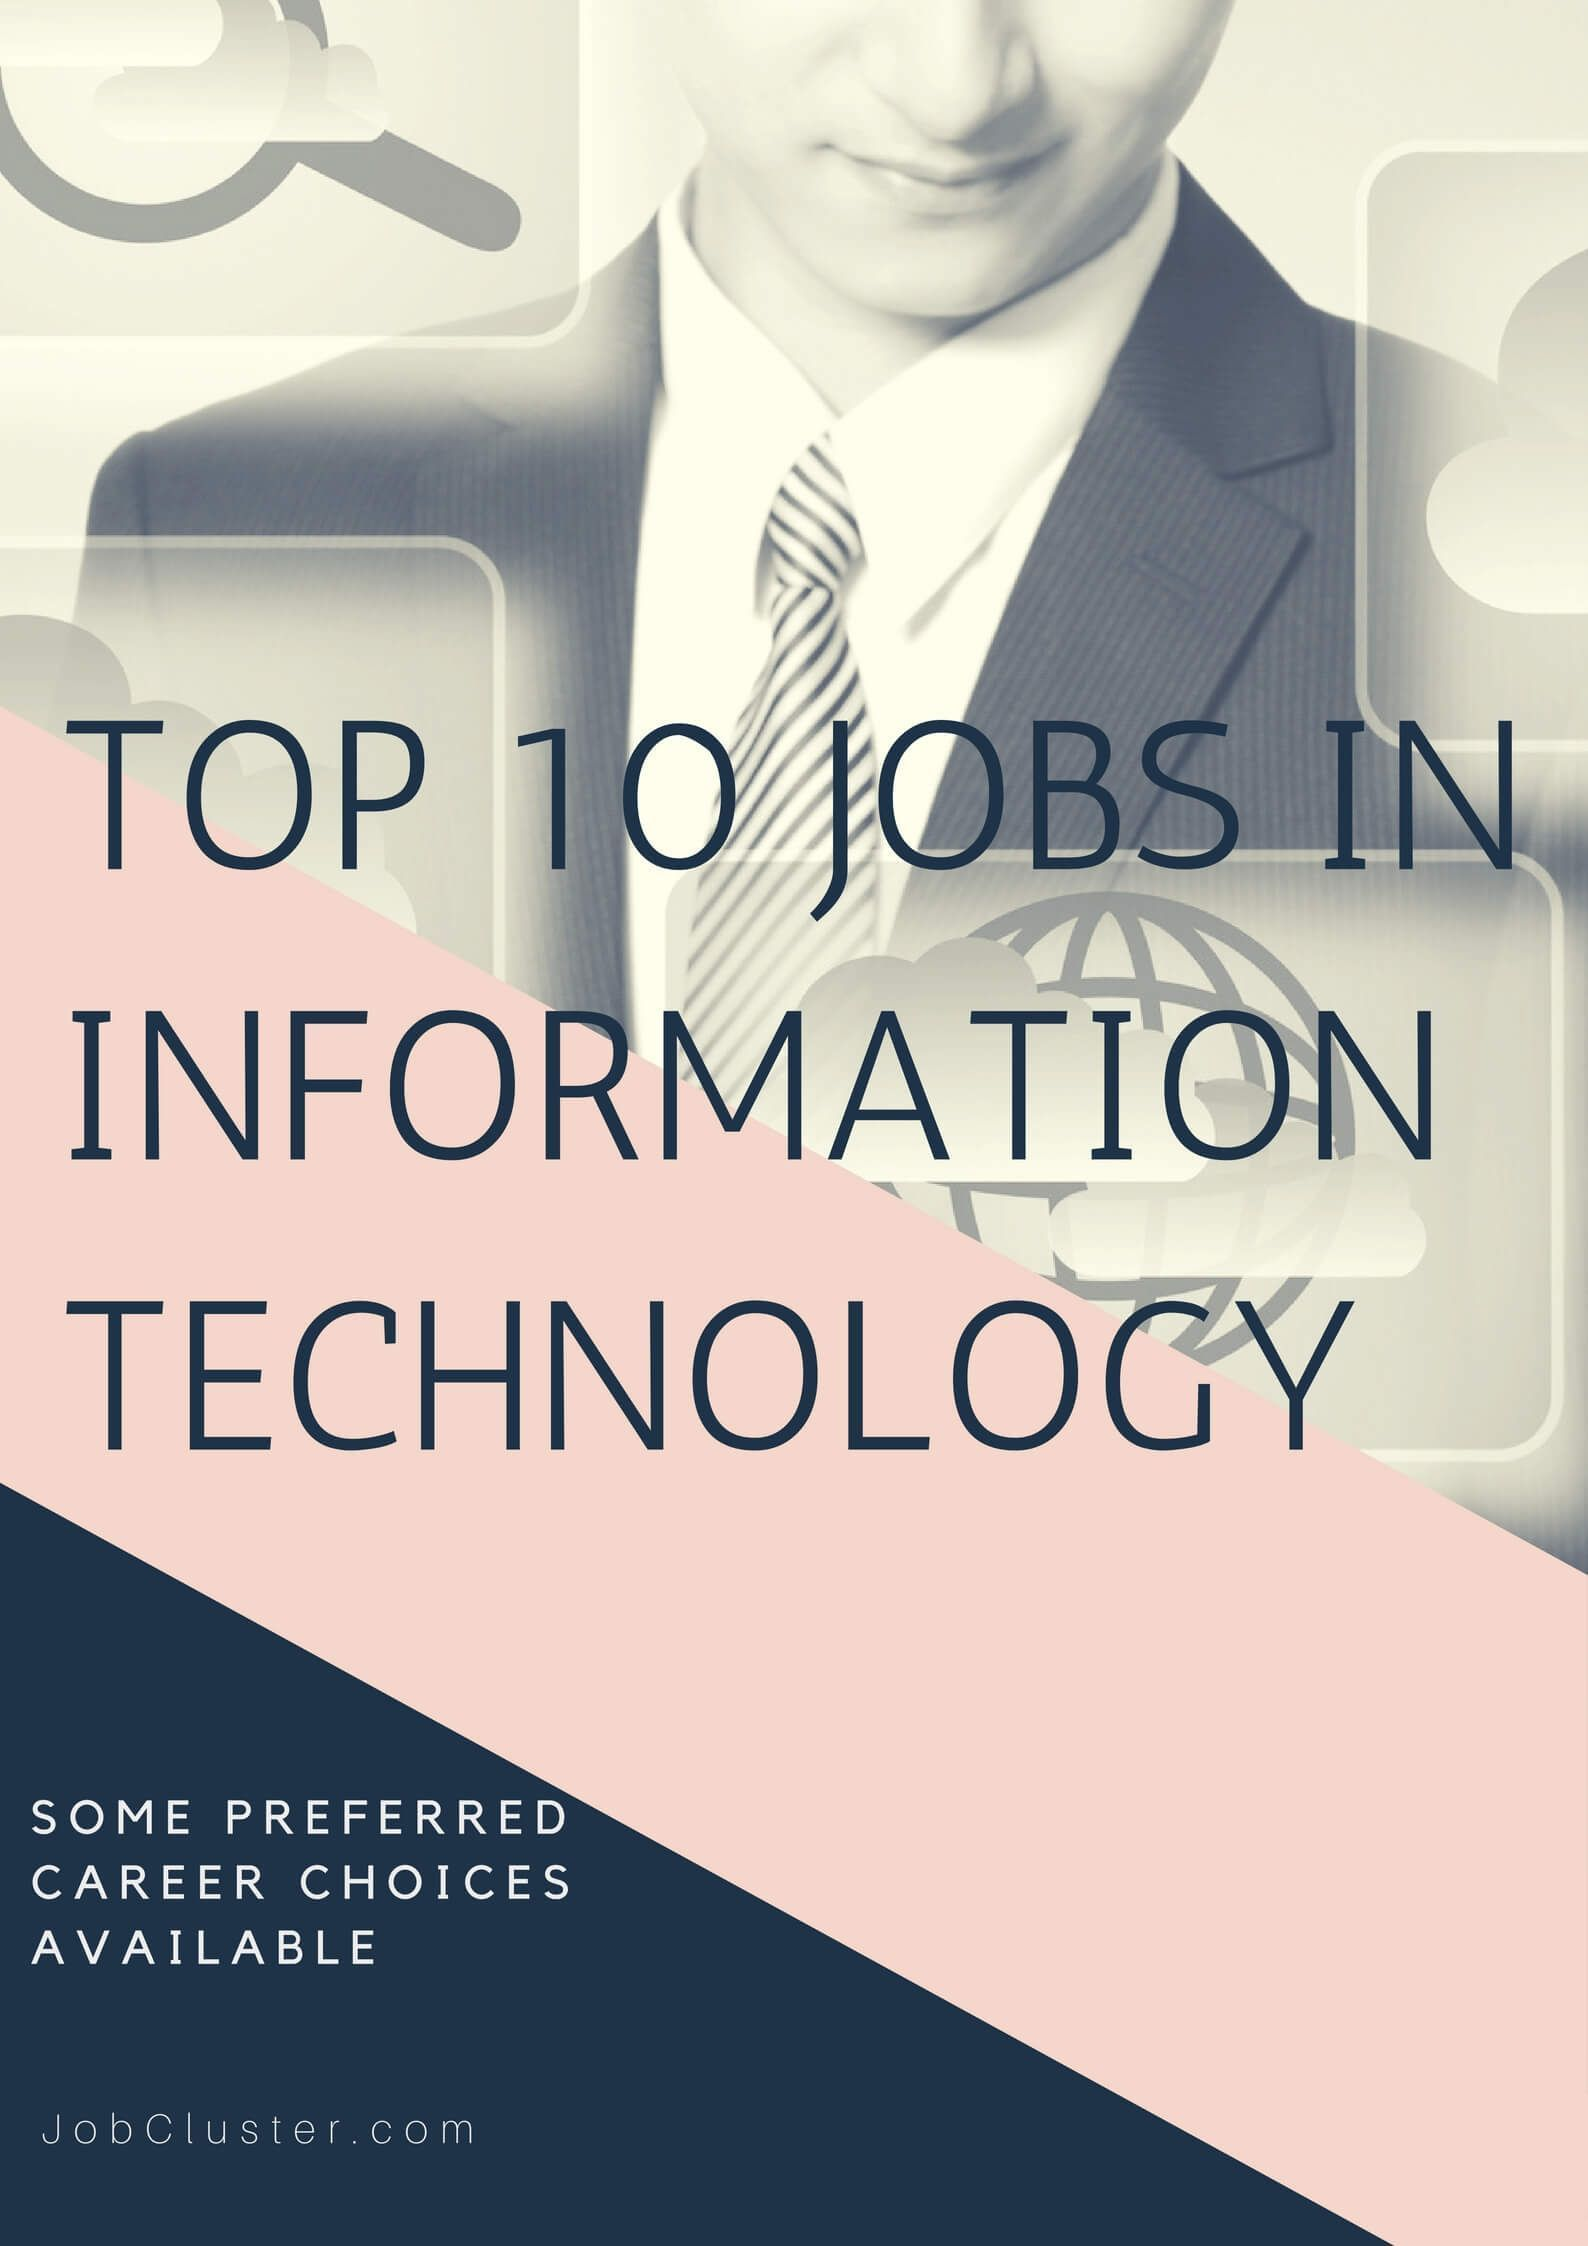 Information Technology Technology Careers Technology Job Technology Job Information In 2020 Technology Careers Information Technology Technology Job